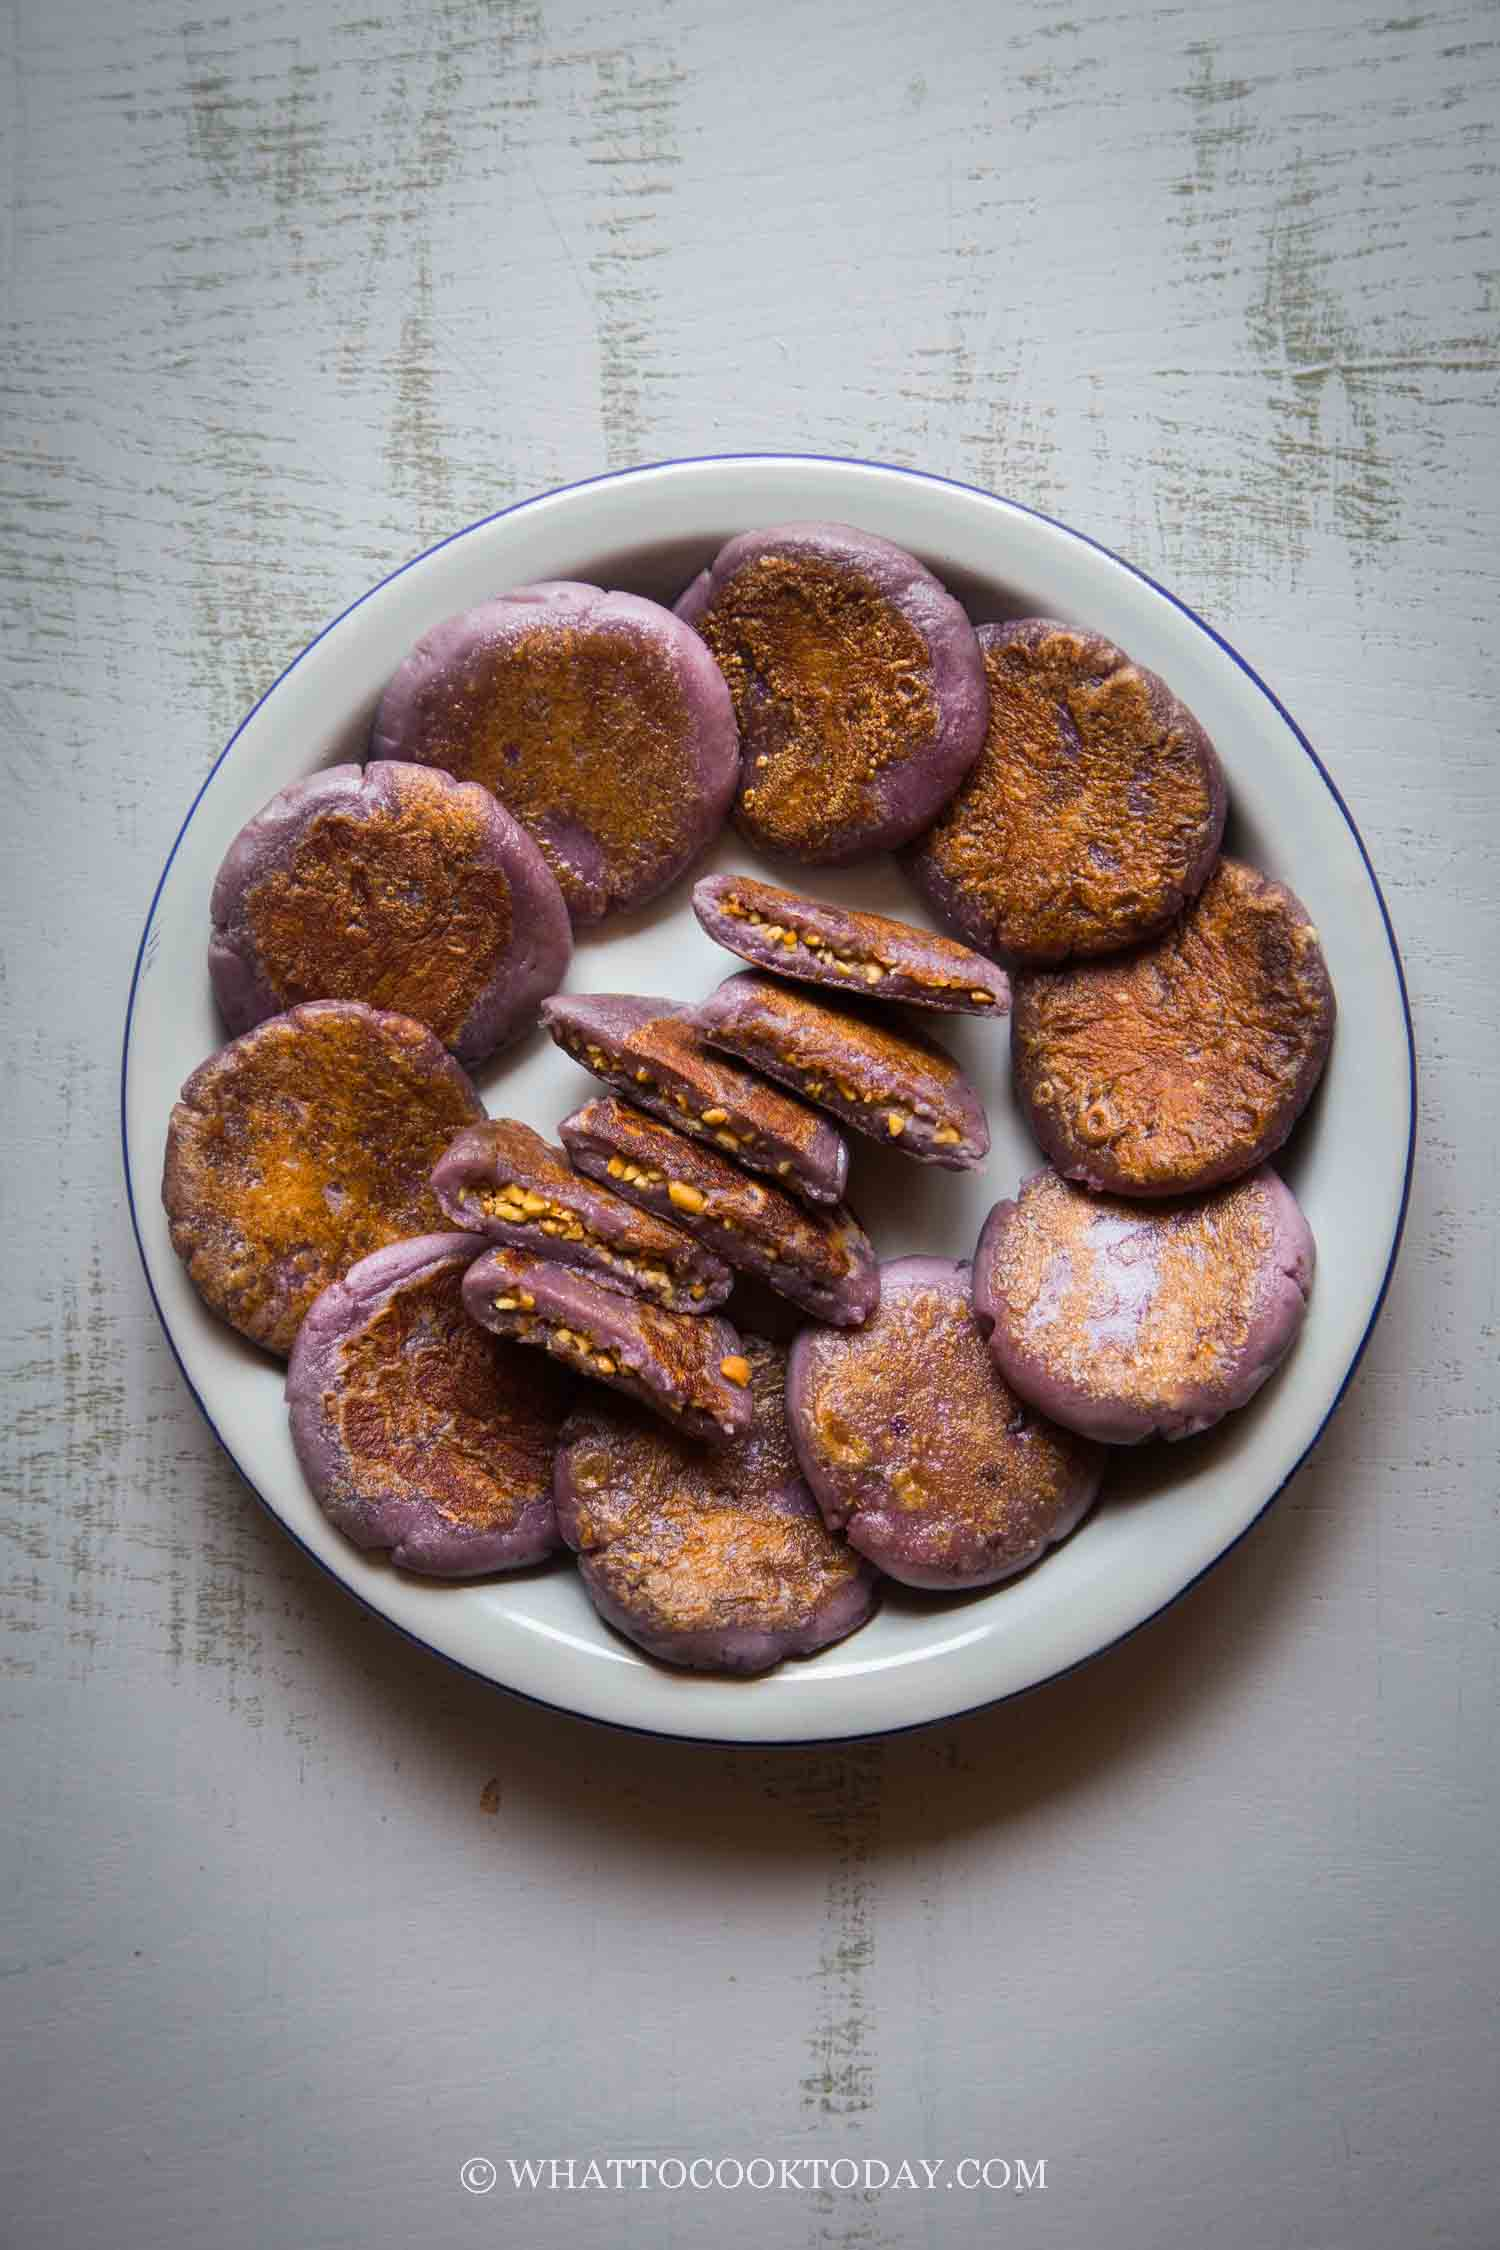 Okinawan Purple Sweet Potato Mochi Cakes with Peanut Fillings